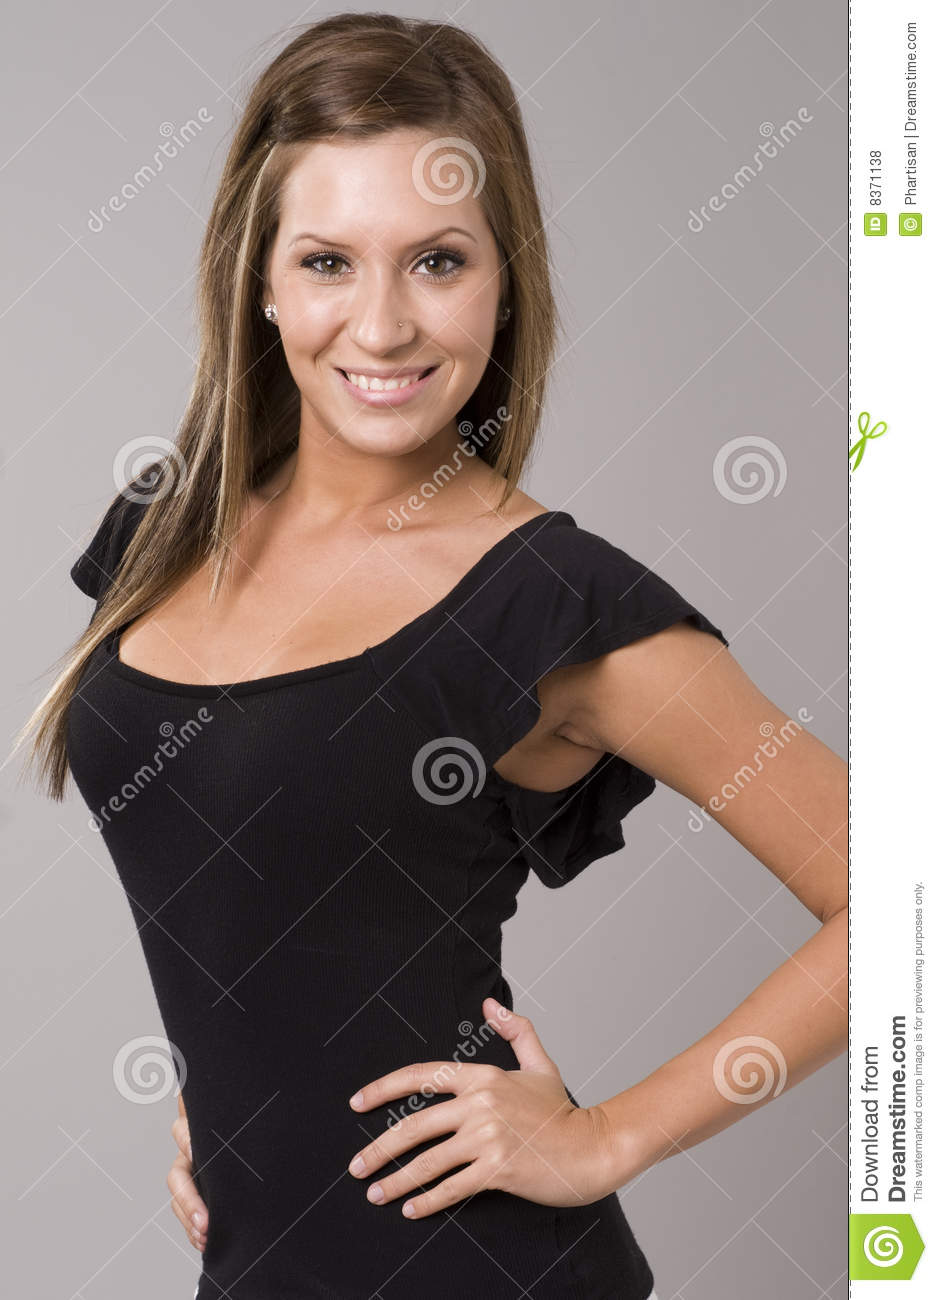 https://thumbs.dreamstime.com/z/confident-happy-young-woman-8371138.jpg